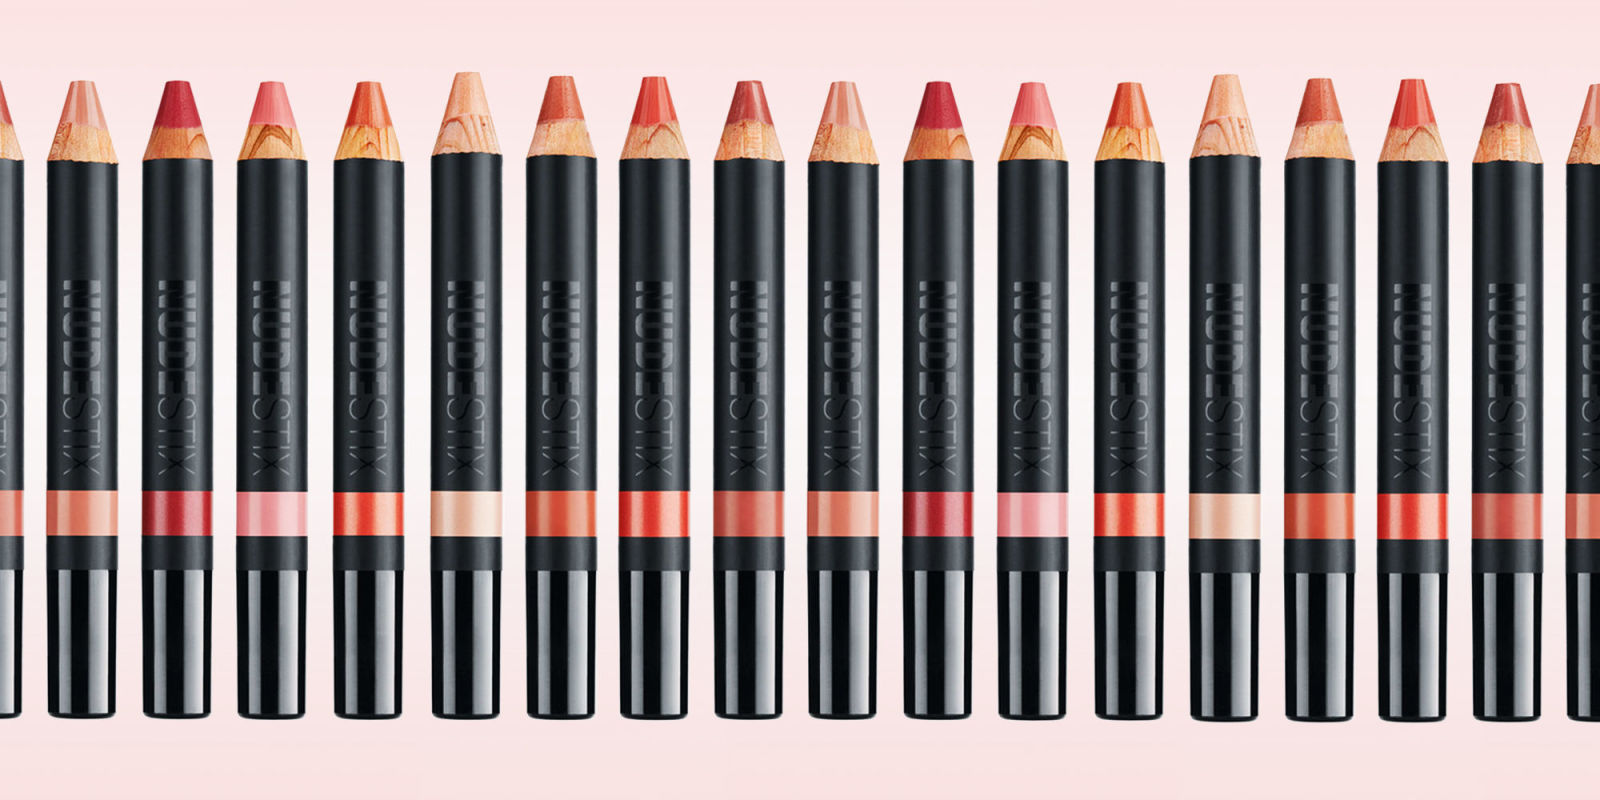 Colour care london lipstick price - Lip Liners